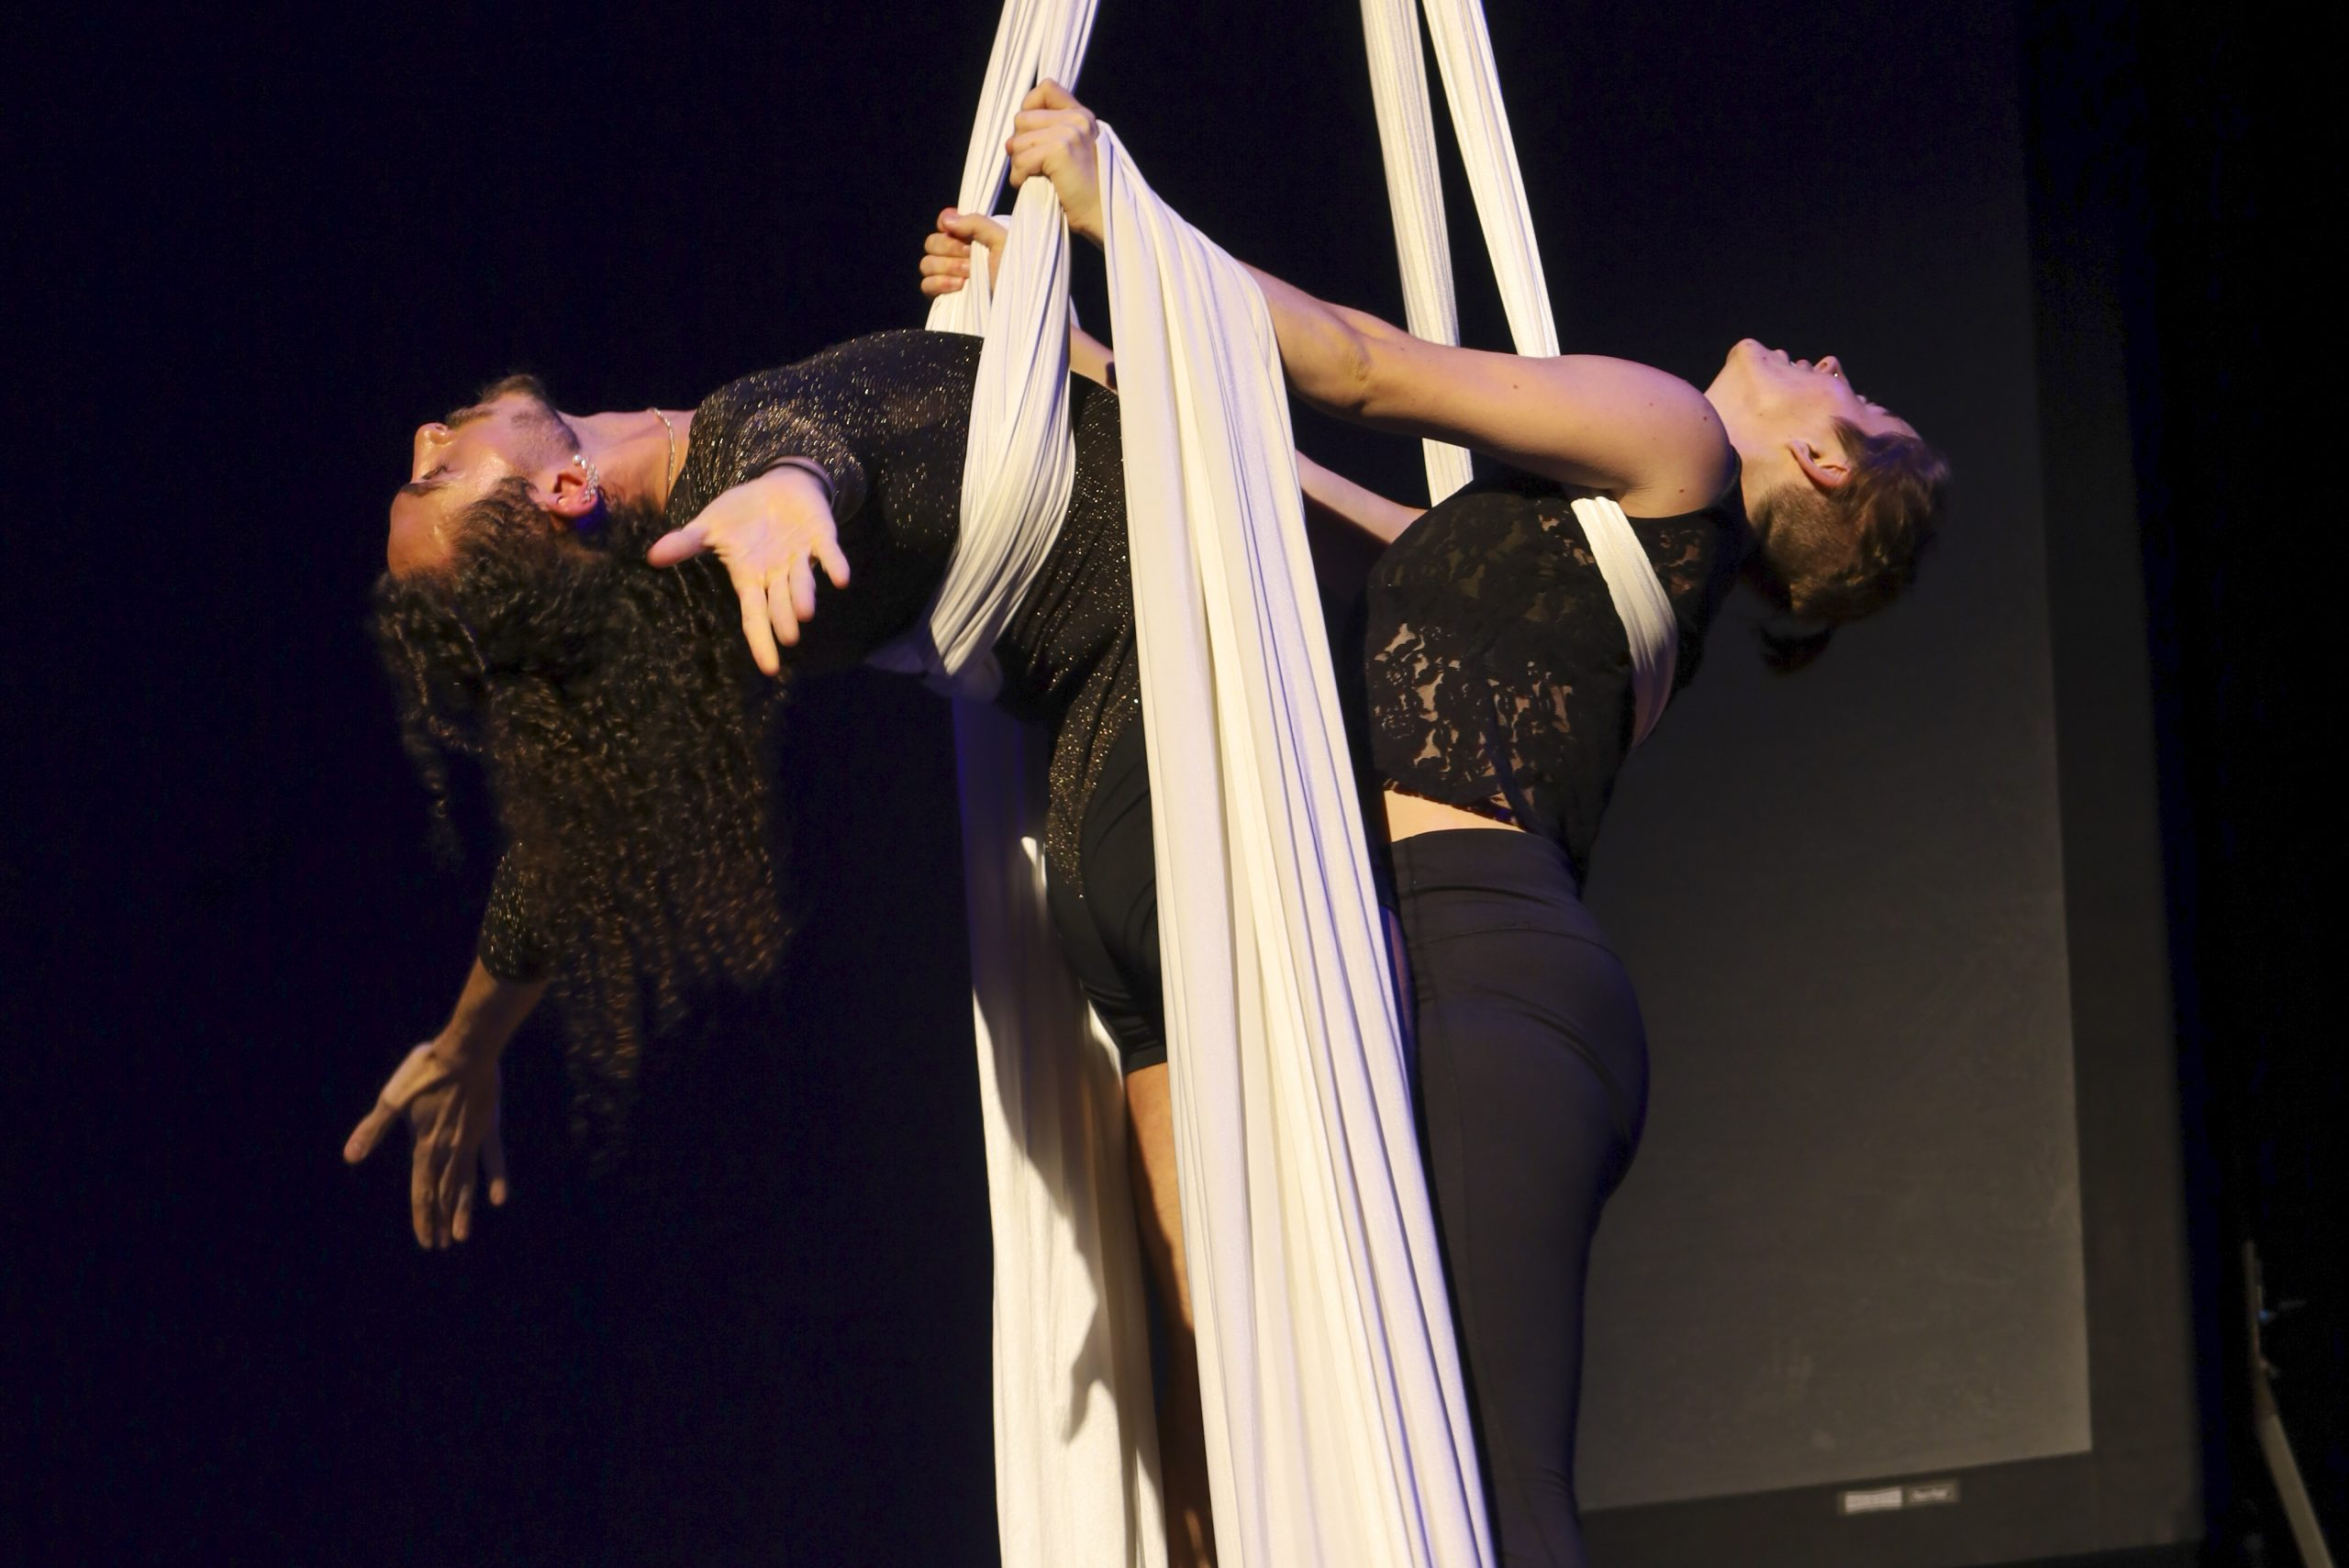 Performers on the silks